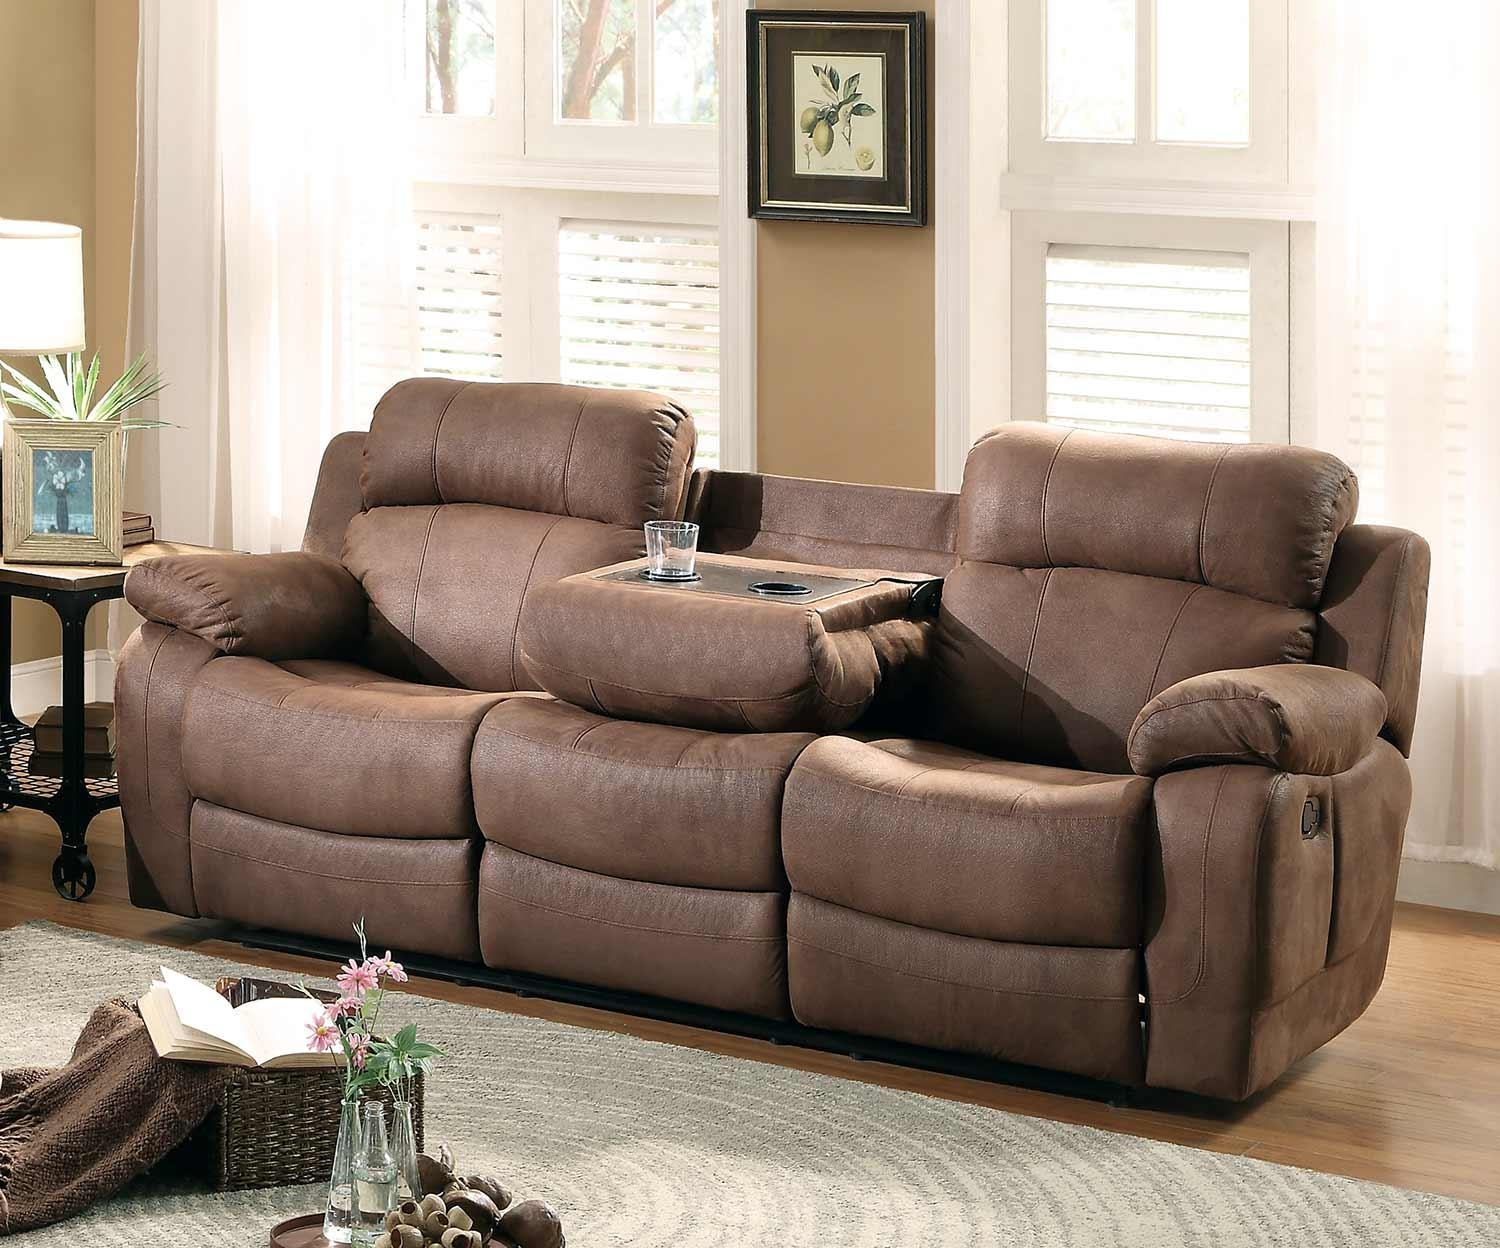 Sofas Center : Furniture Romantic Loveseat Recliner With Console Within Sofas With Console (Image 13 of 20)